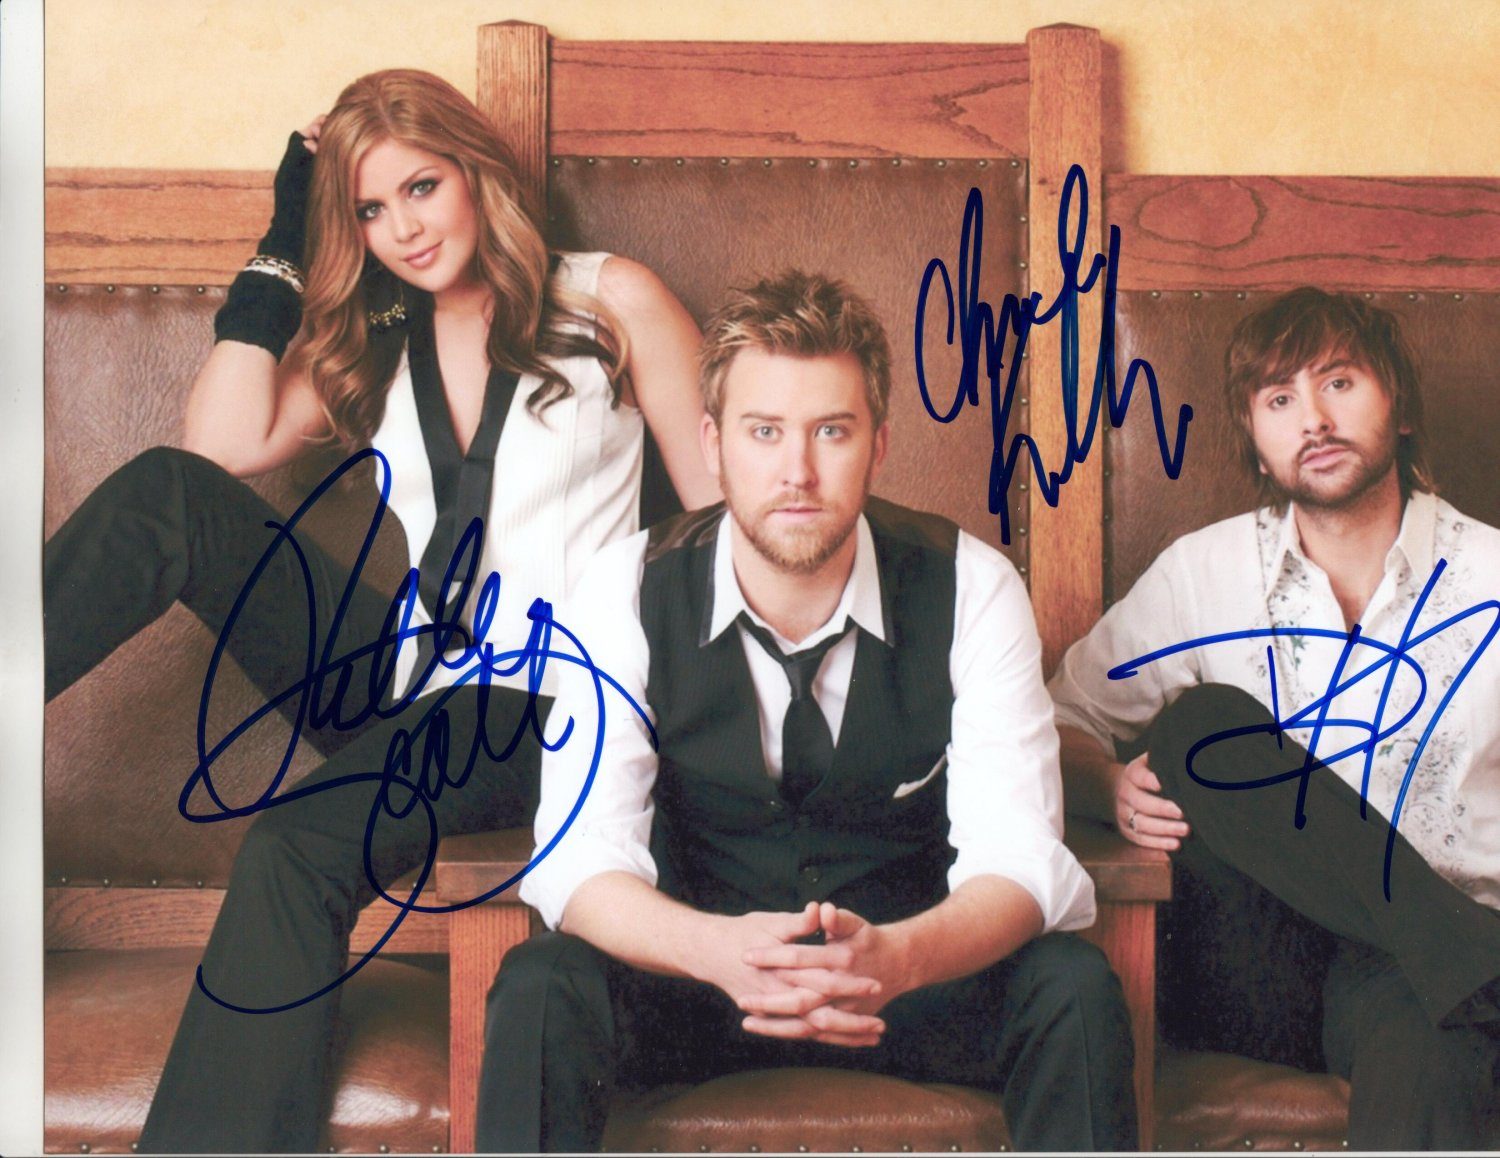 LADY ANTEBELLUM BAND - AWESOME COUNTRY - HAND SIGNED AUTOGRAPHED PHOTO WITH COA